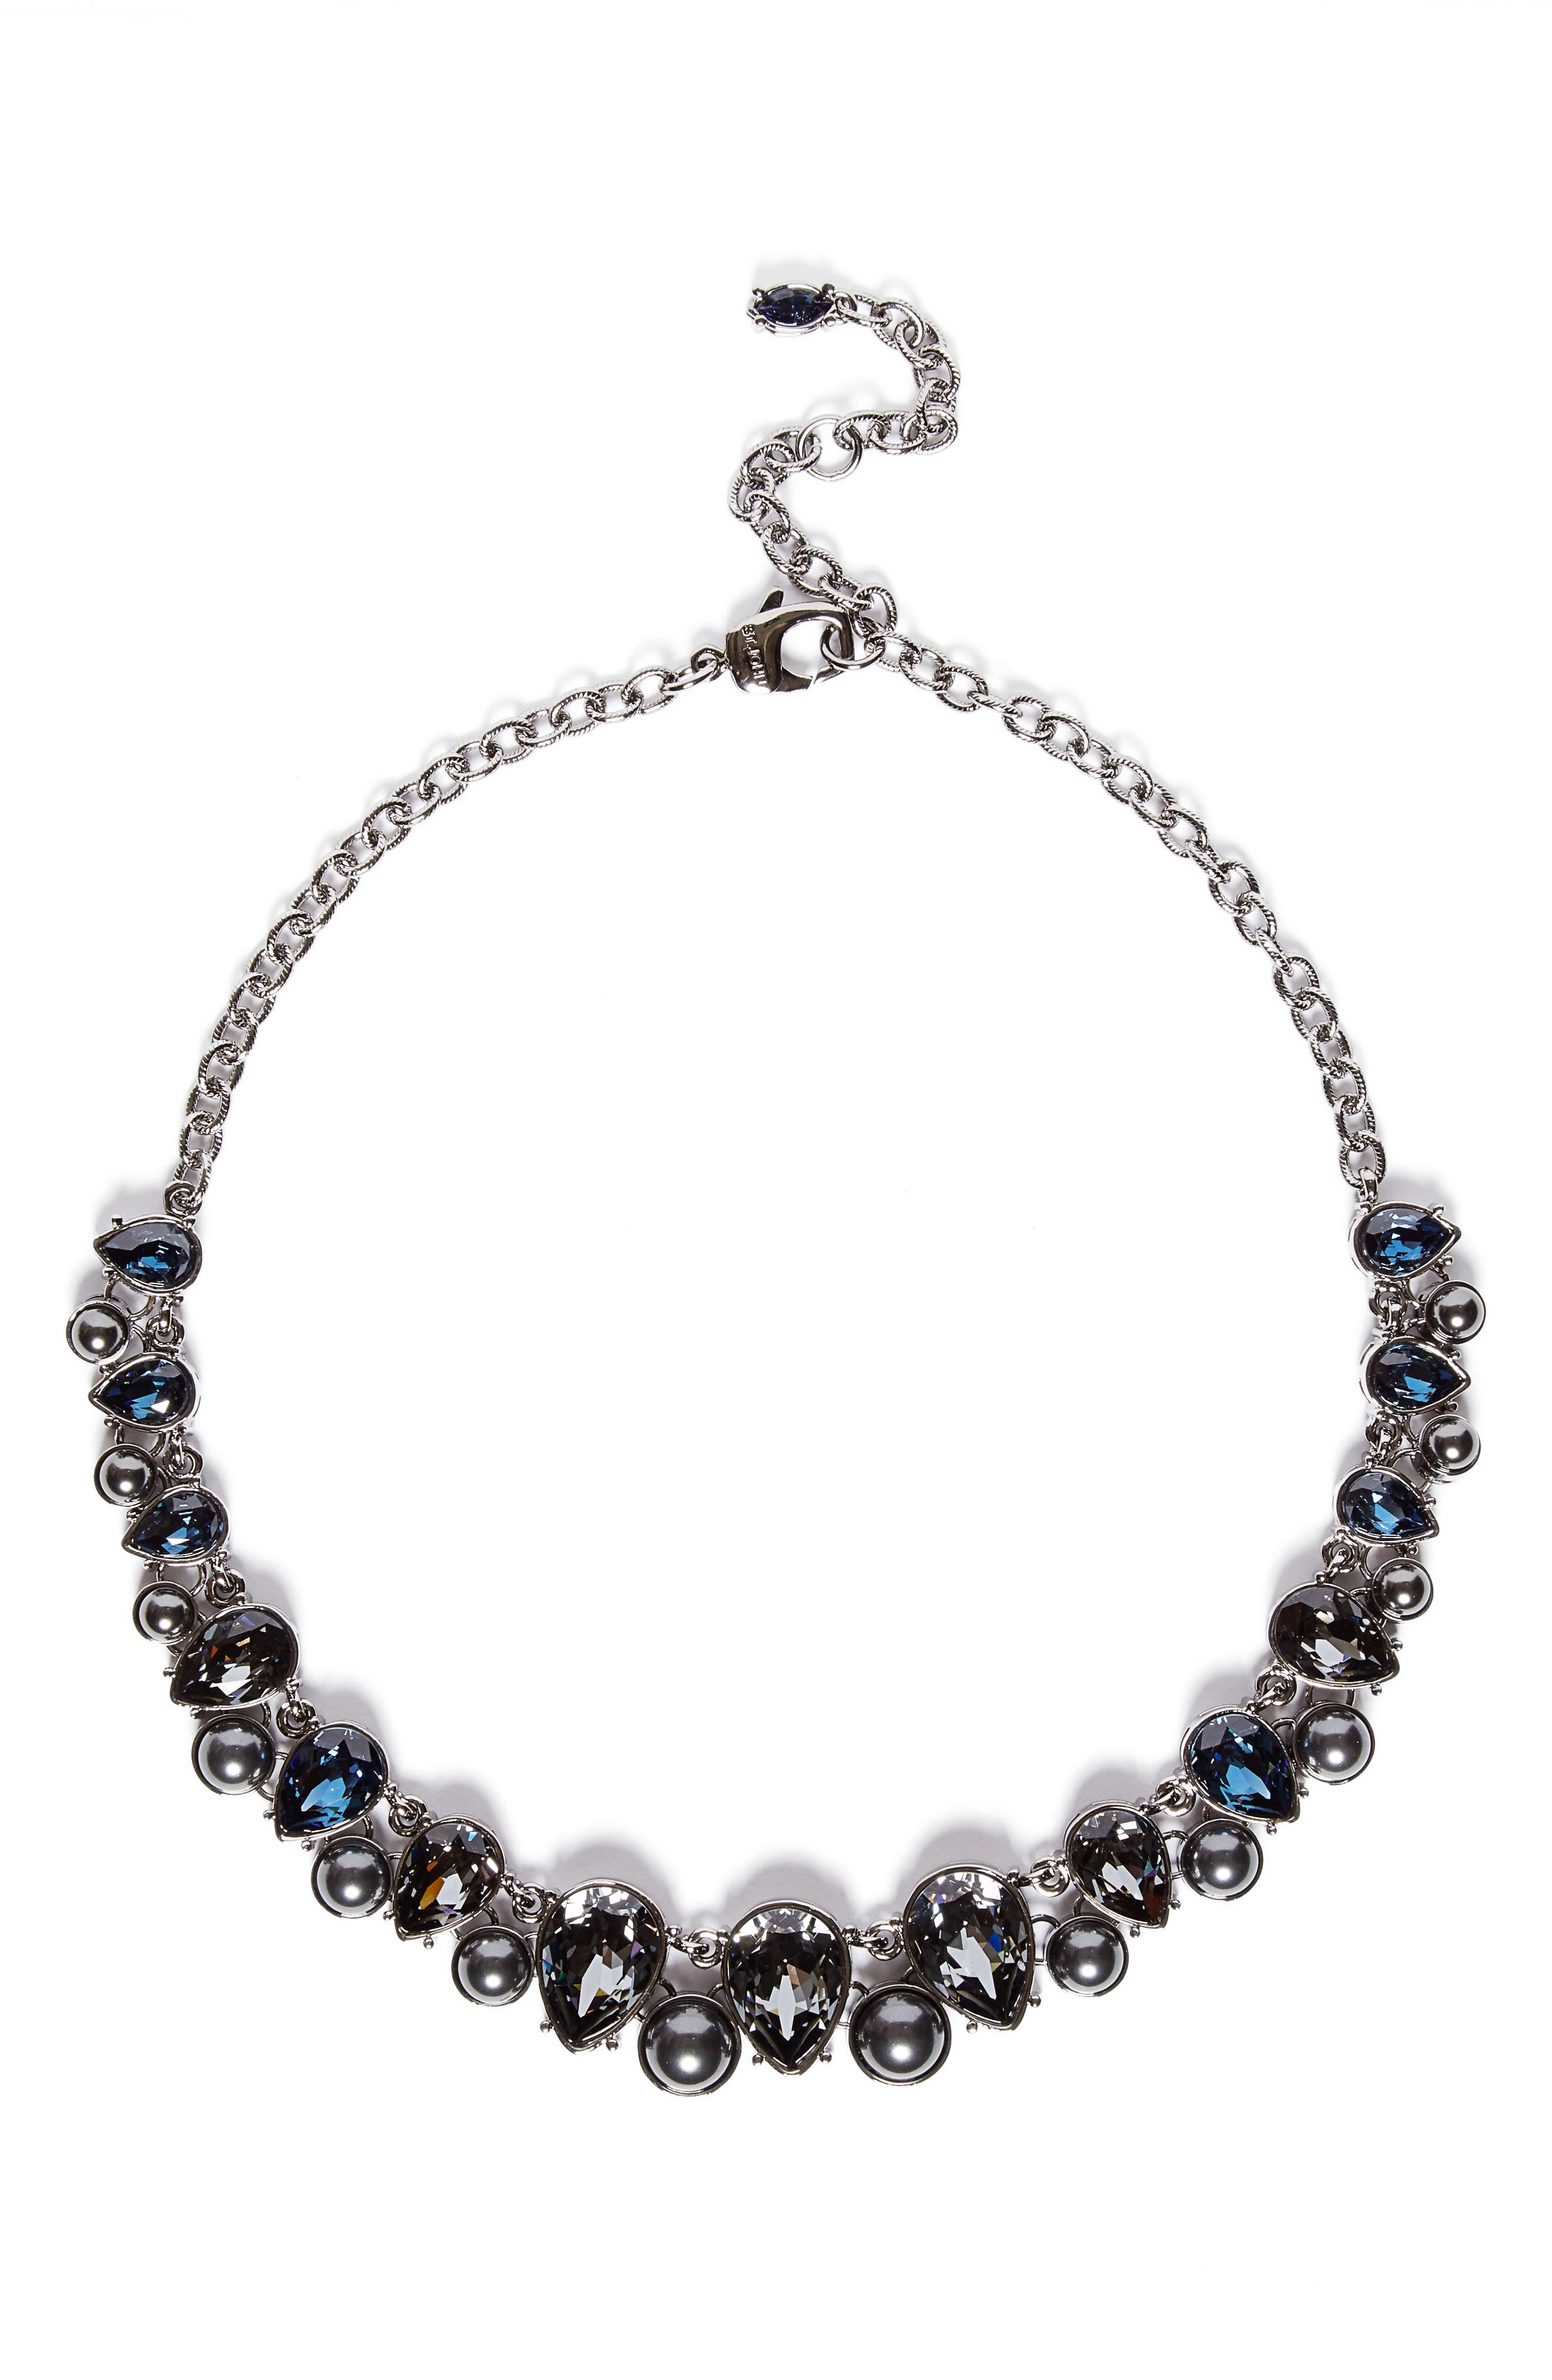 Swarovski Crystal & Imitation Pearl Necklace,                             Main thumbnail 1, color,                             Drk Ruth/Crys Blk Prl/Csn/Mont